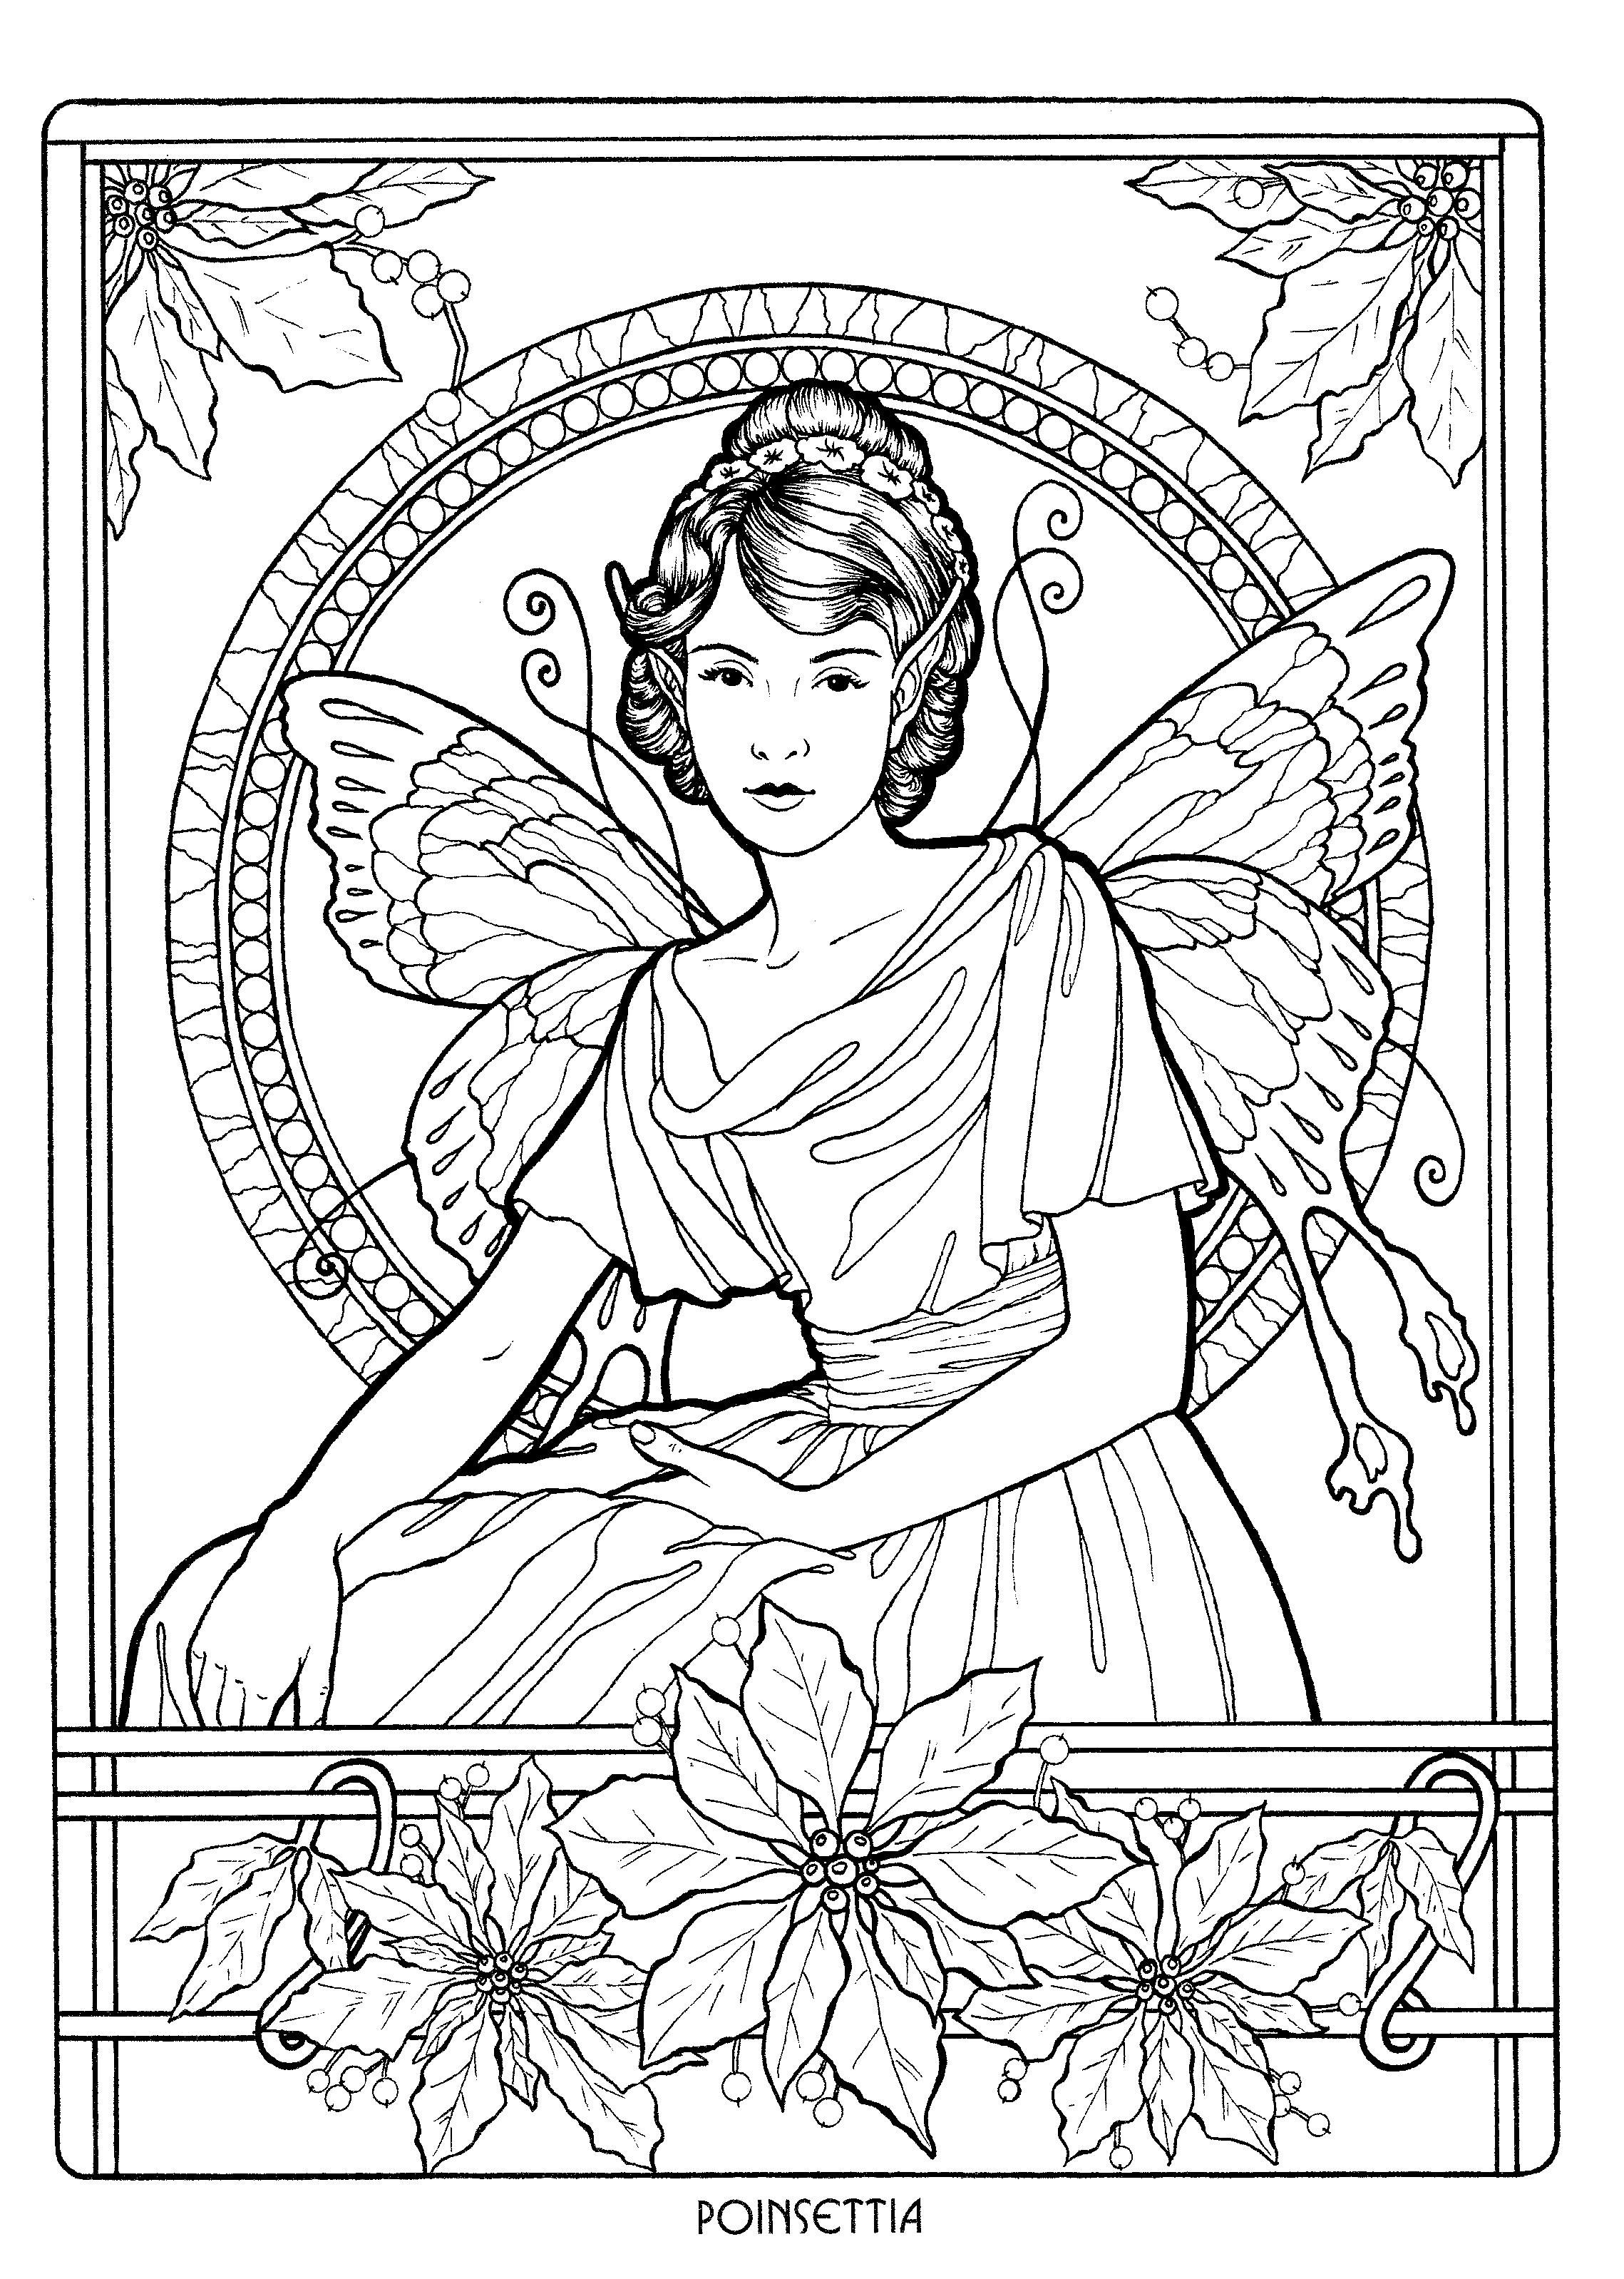 Fairy 12 | Coloring pages to print - Fantasy | Pinterest